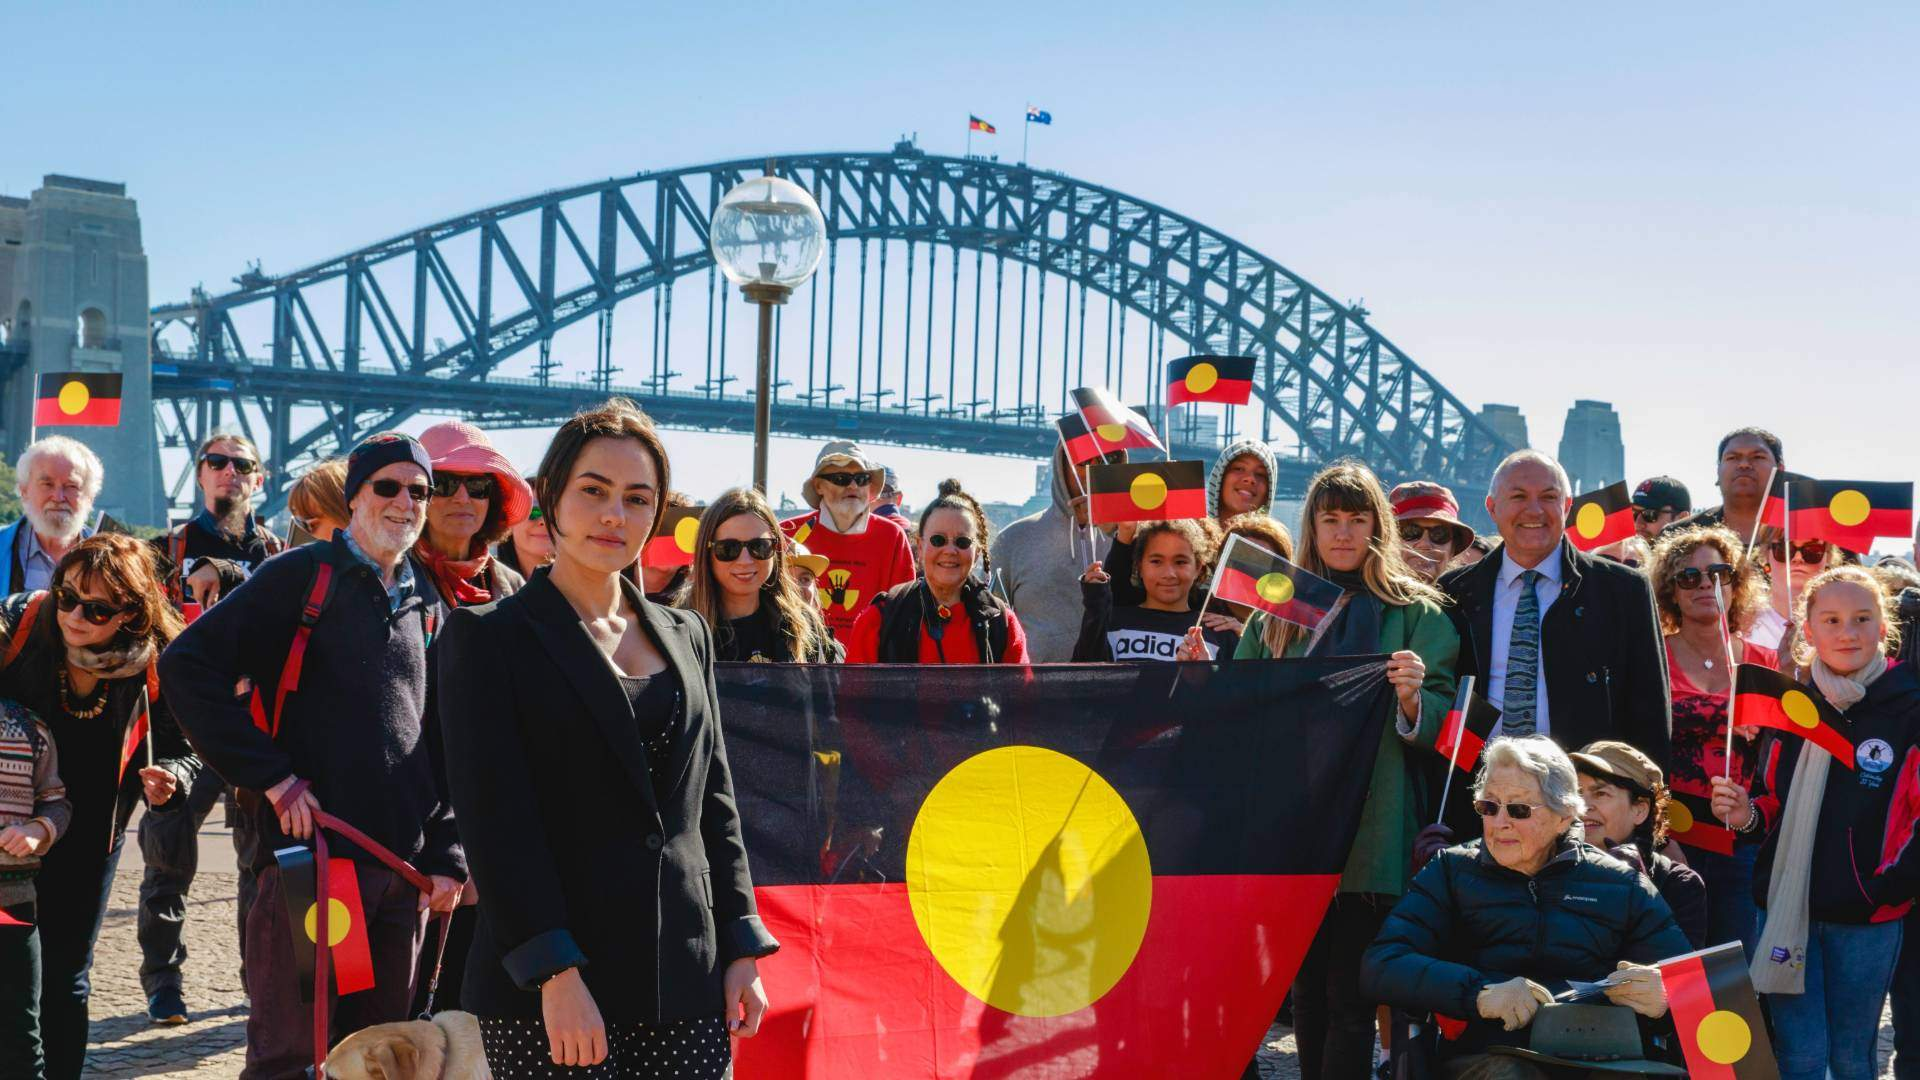 A Crowdfunding Campaign to Fly the Aboriginal Flag on the Harbour Bridge Has Raised $20,000